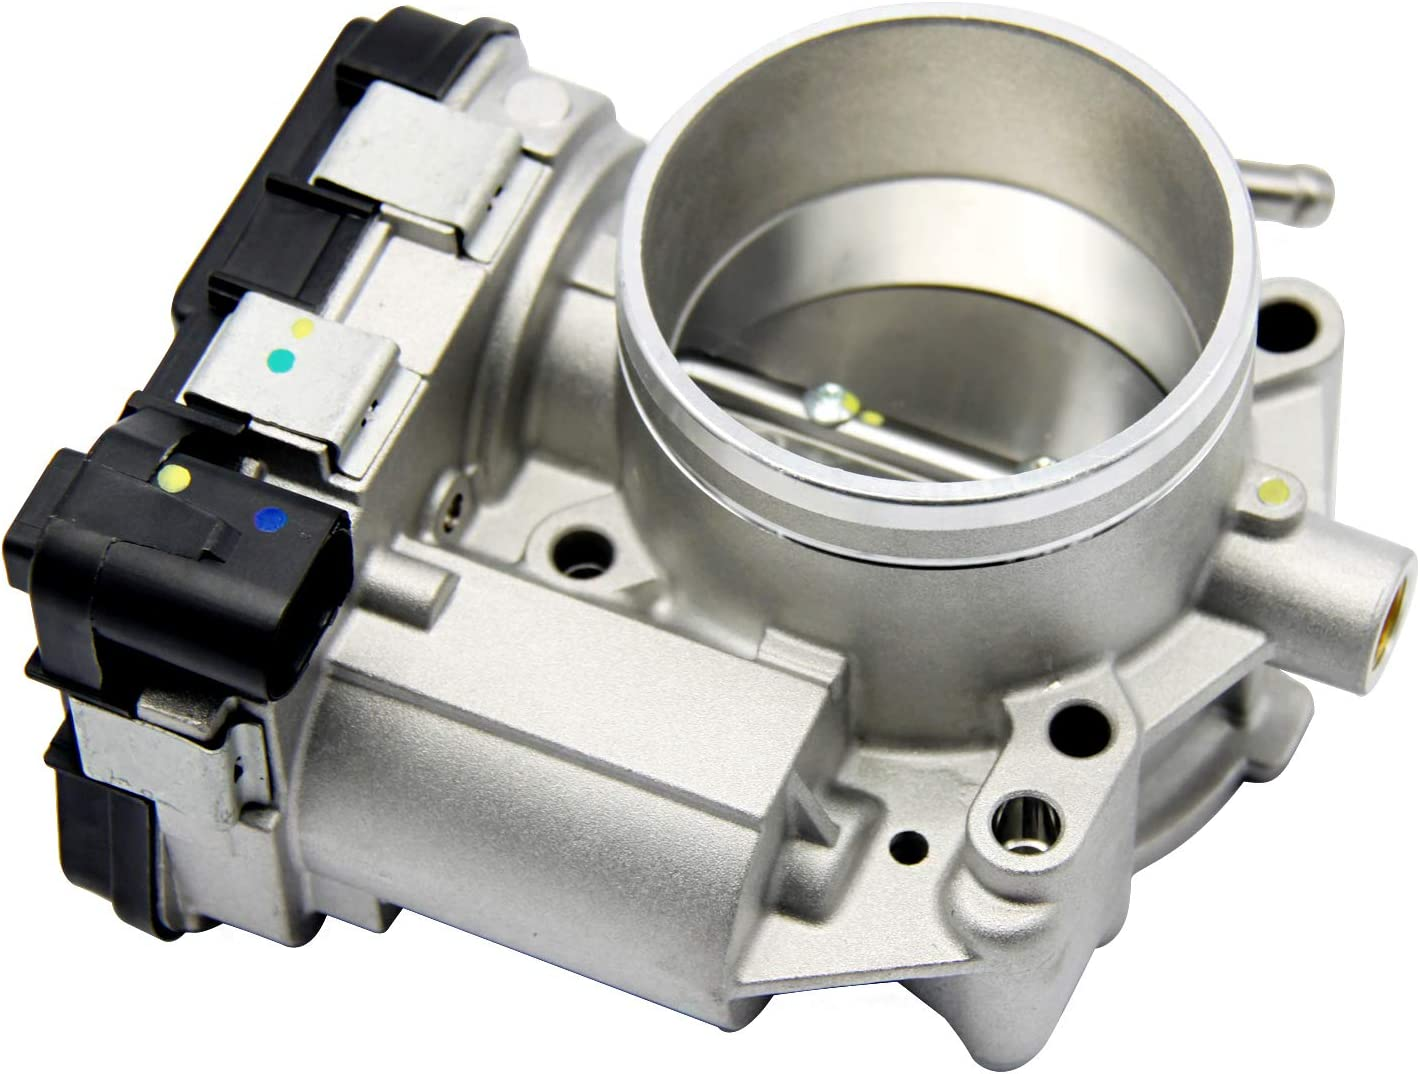 HOWYAA Max 66% 67% OFF of fixed price OFF New Electronic Throttle Body-OEM Replace 07K133062A